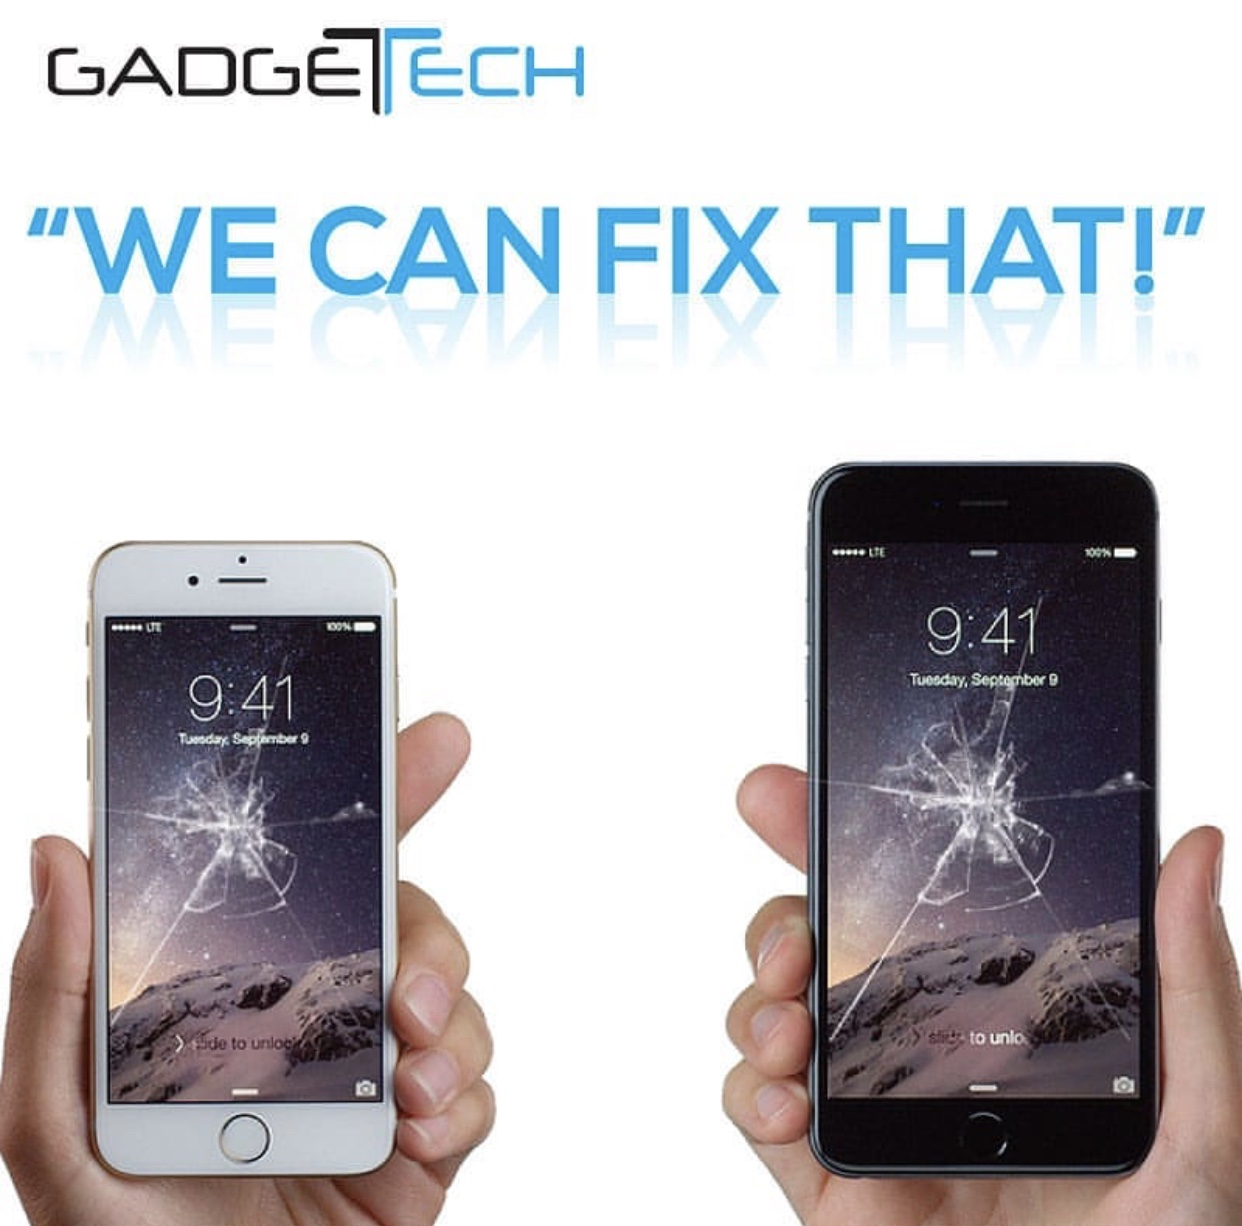 Gadget tech does all phone issue & repair's for amazing prices